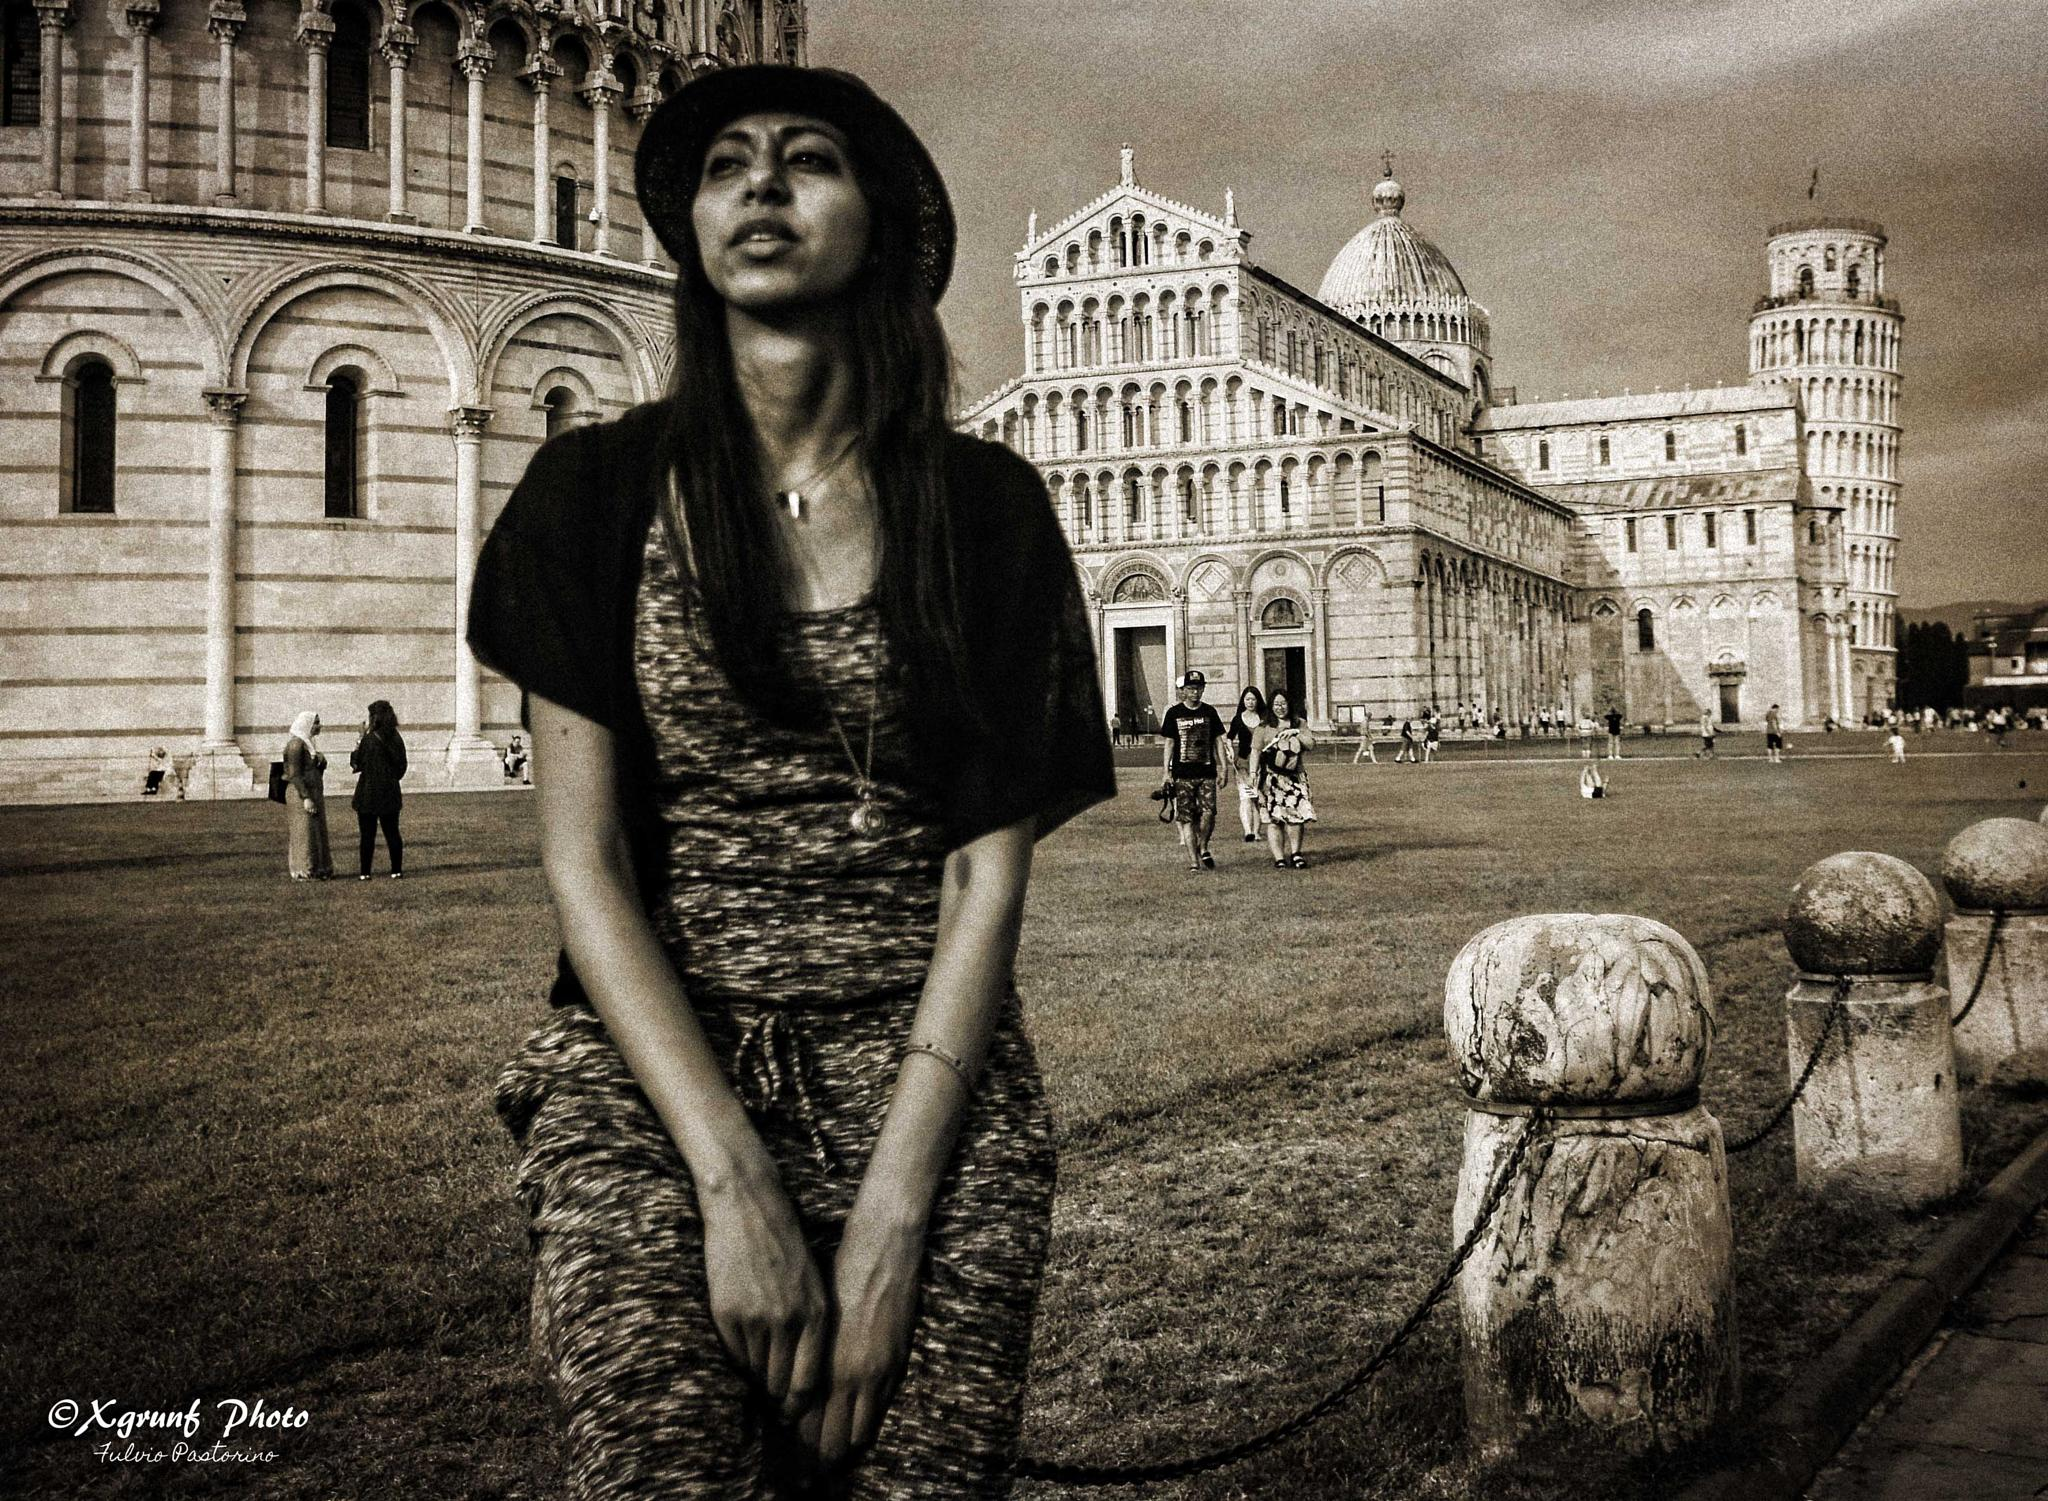 The Lady and the Tower by fulvio.pastorino